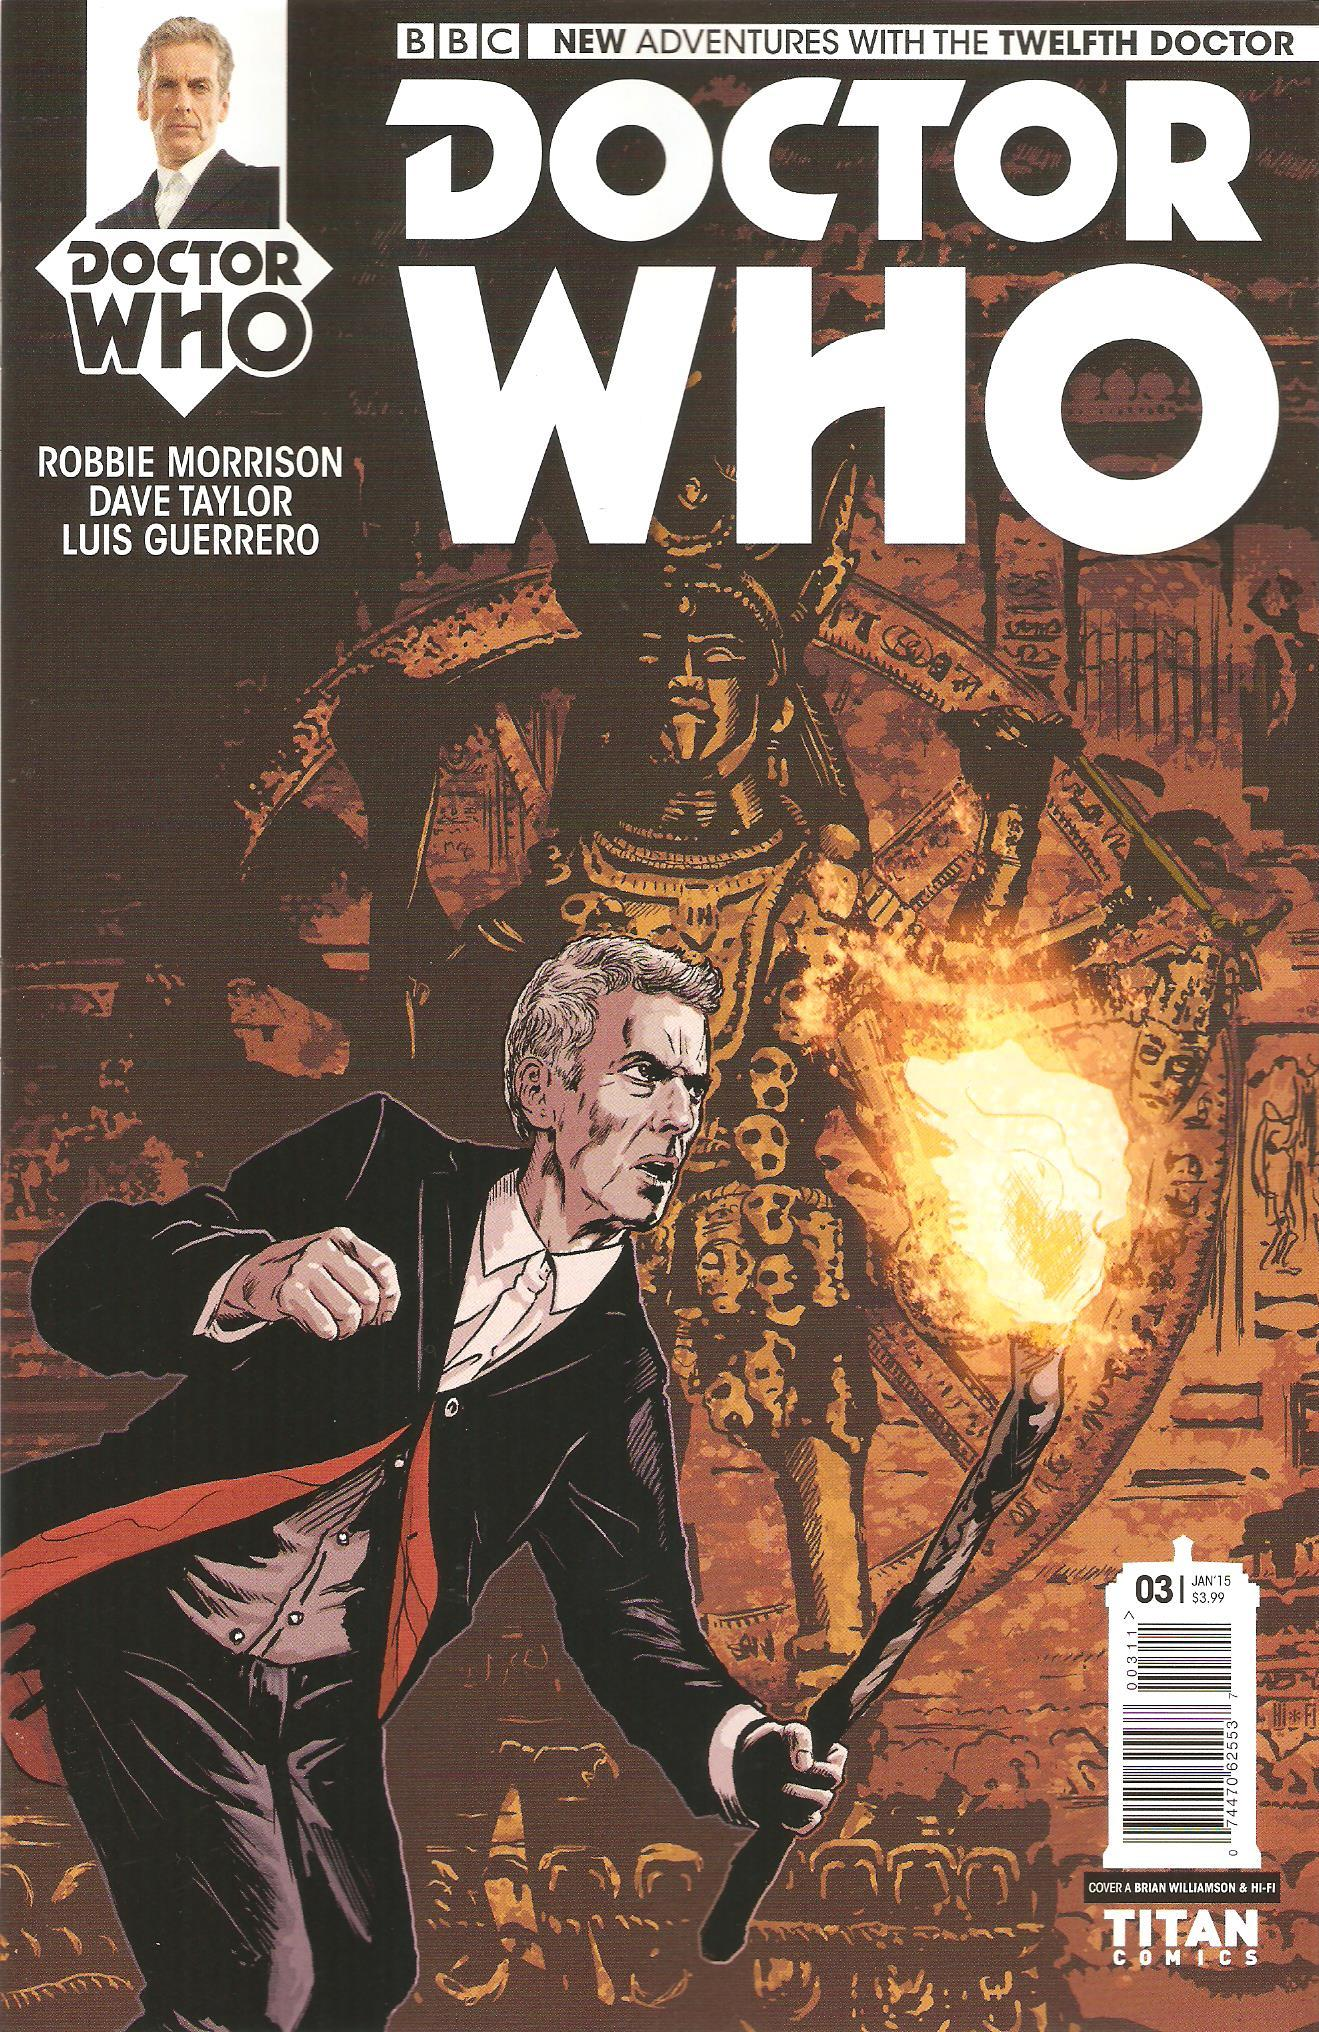 Twelfth doctor issue 3a